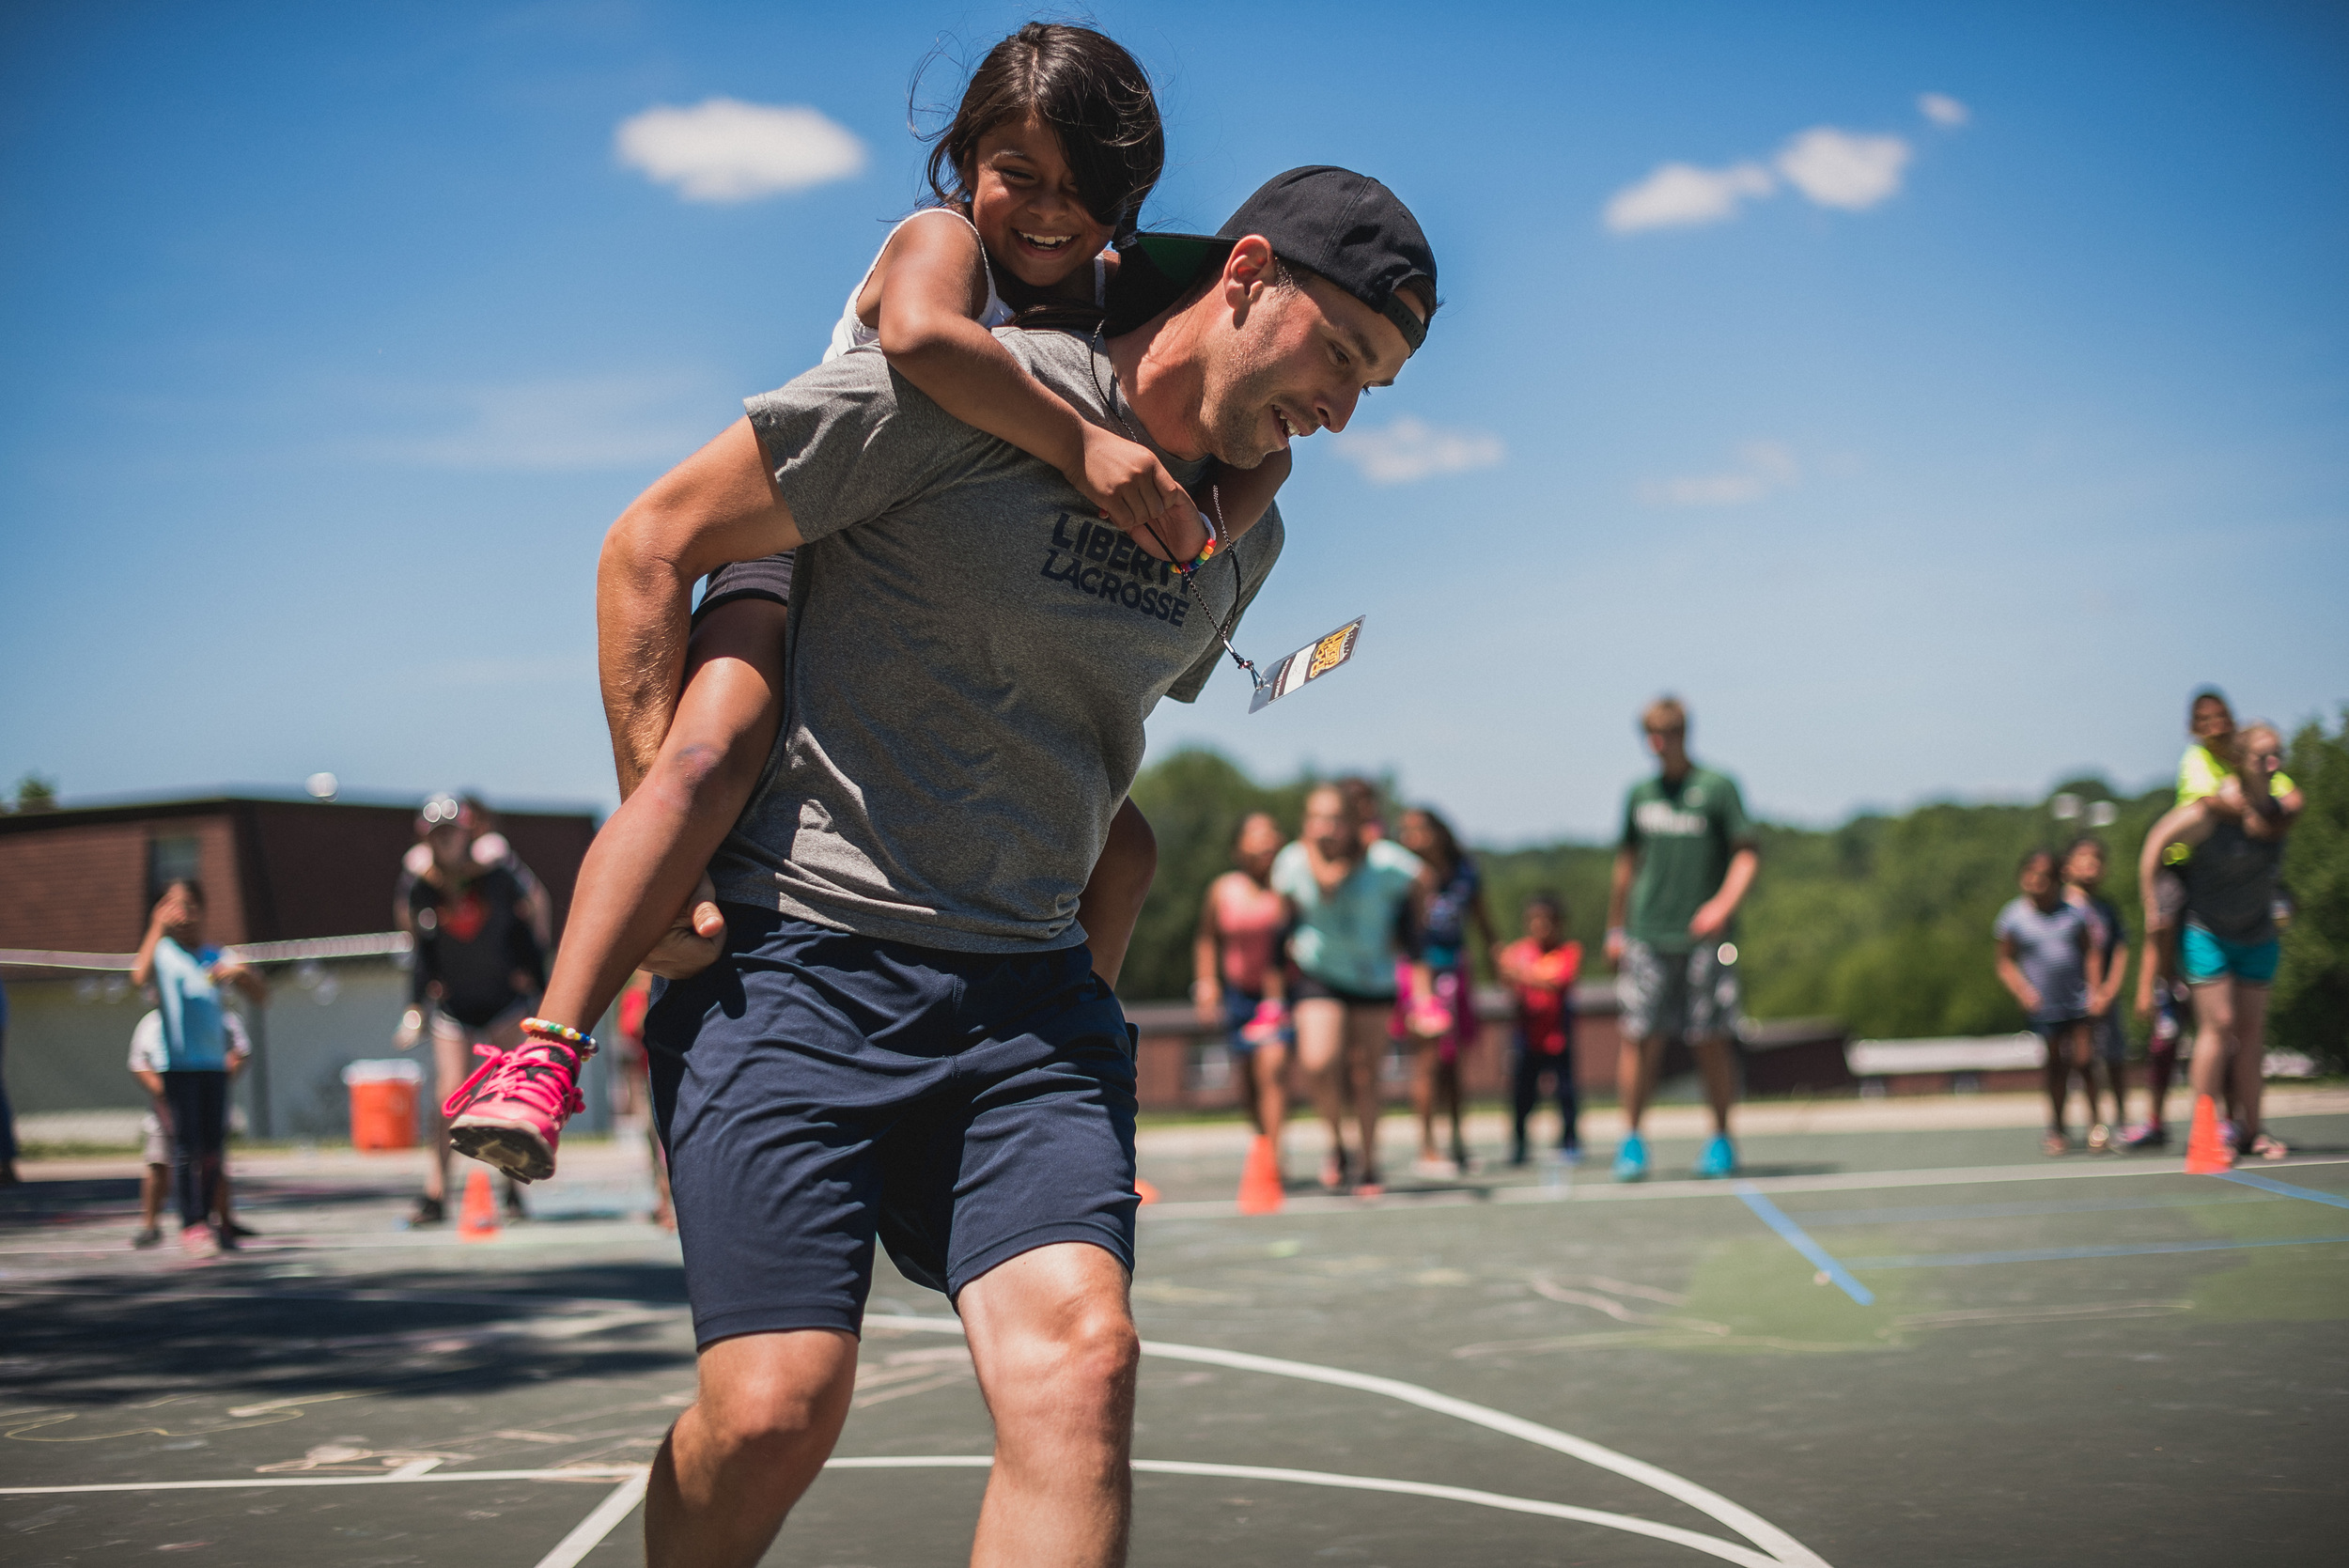 Camp Skillz is hard work, but for many of the kids involved, it's the only organized summer program available to them.